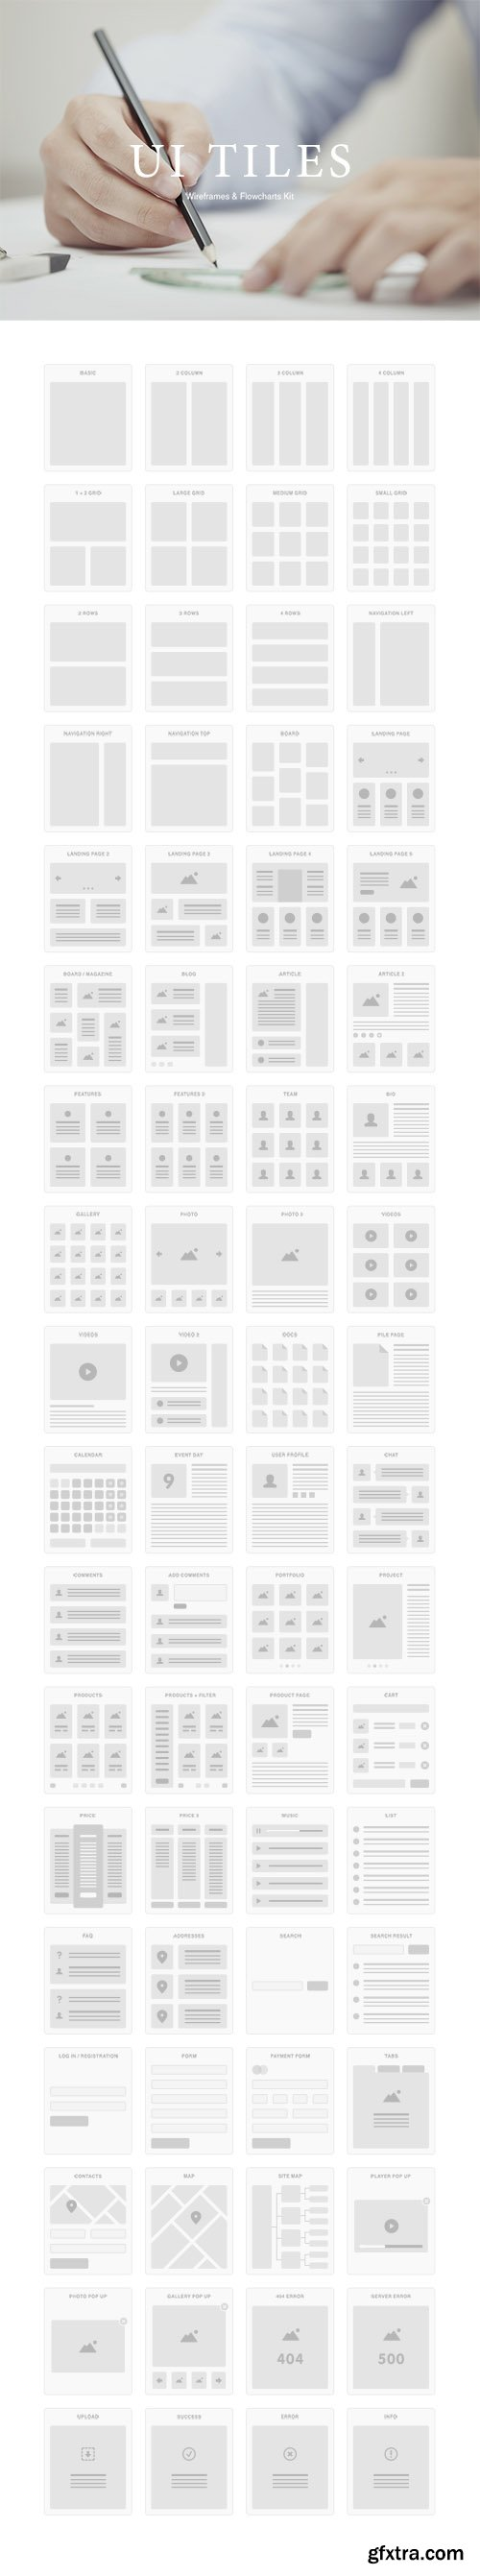 PSD, AI, Sketch UI Tiles - Wireframes And Flowcharts 2014